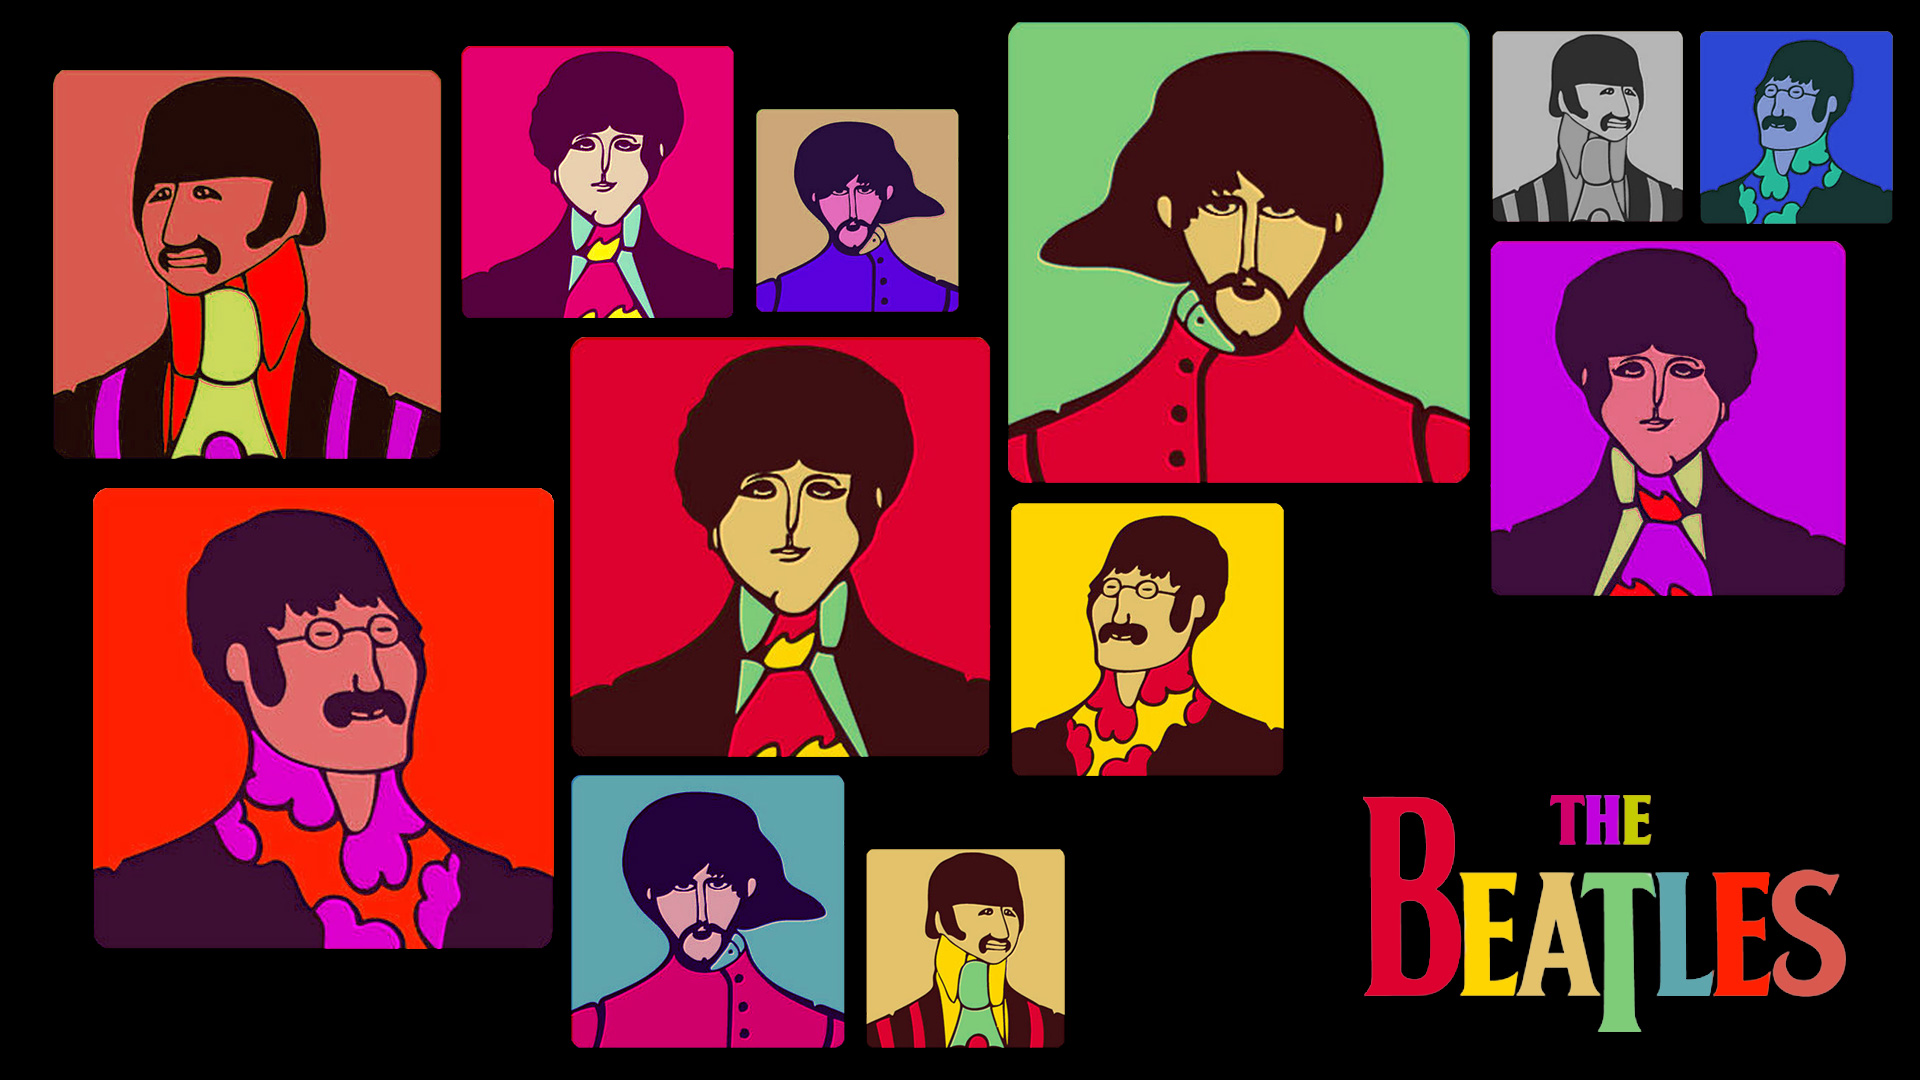 Free Download The Beatles Yellow Submarine Wallpaper By Felipemuve